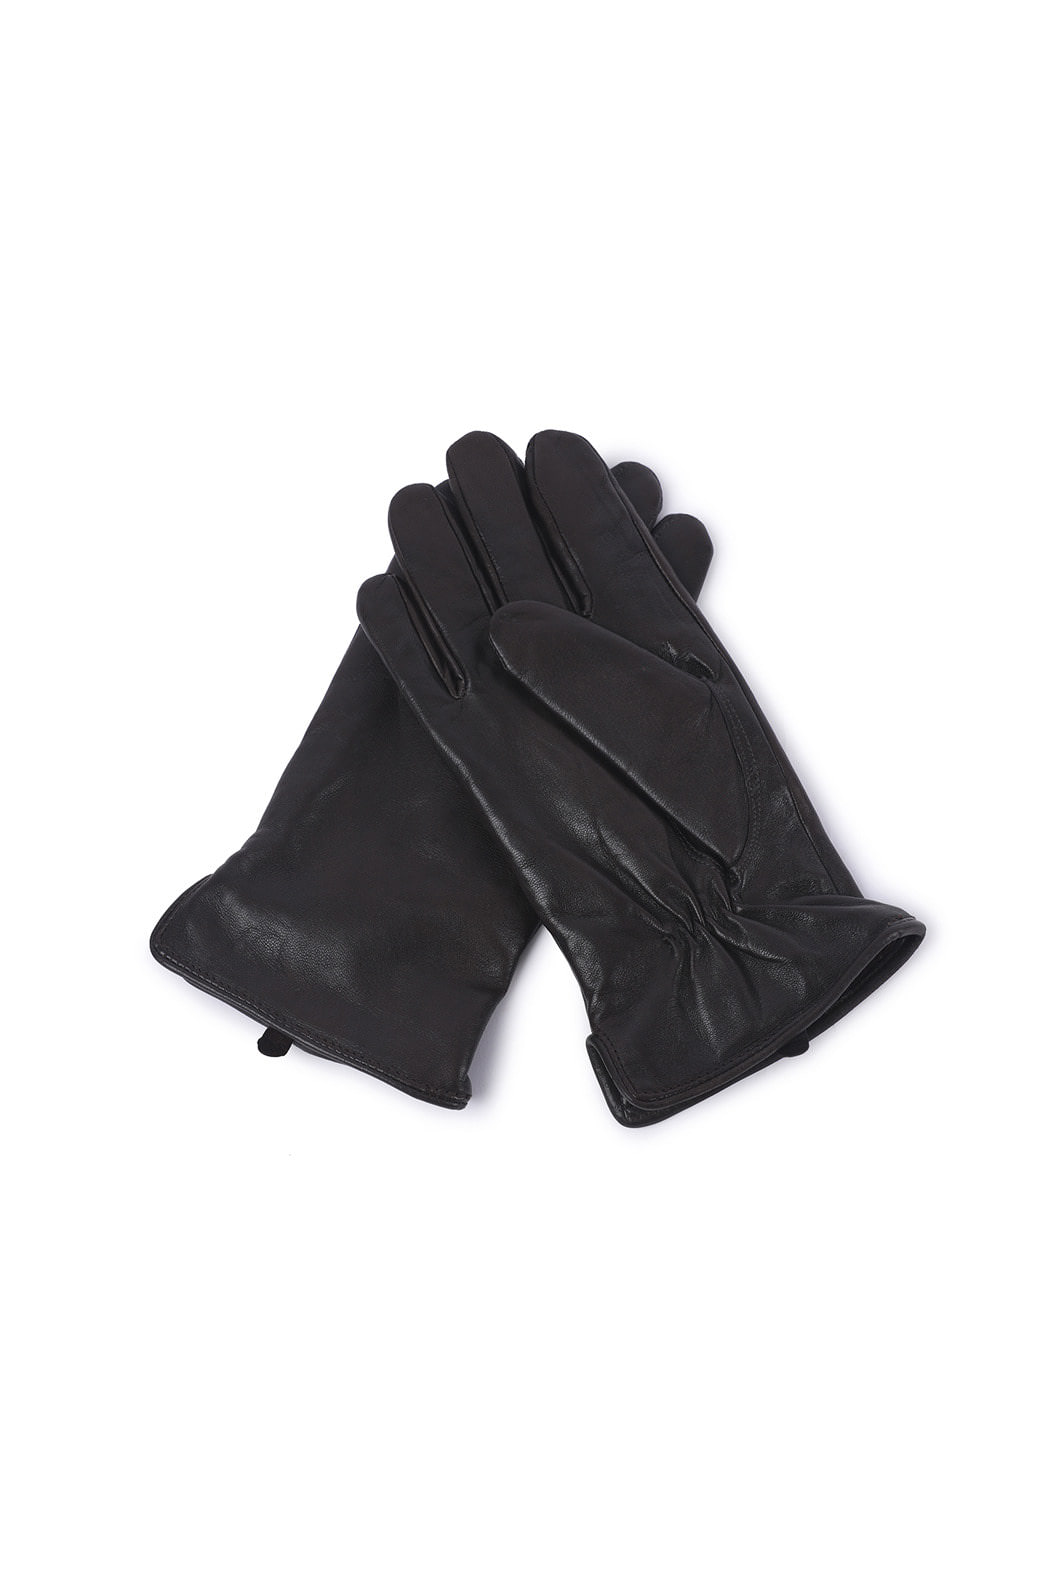 BASIC REAL LEATHER GLOVE-2COLOR[SHEEP SKIN100%]